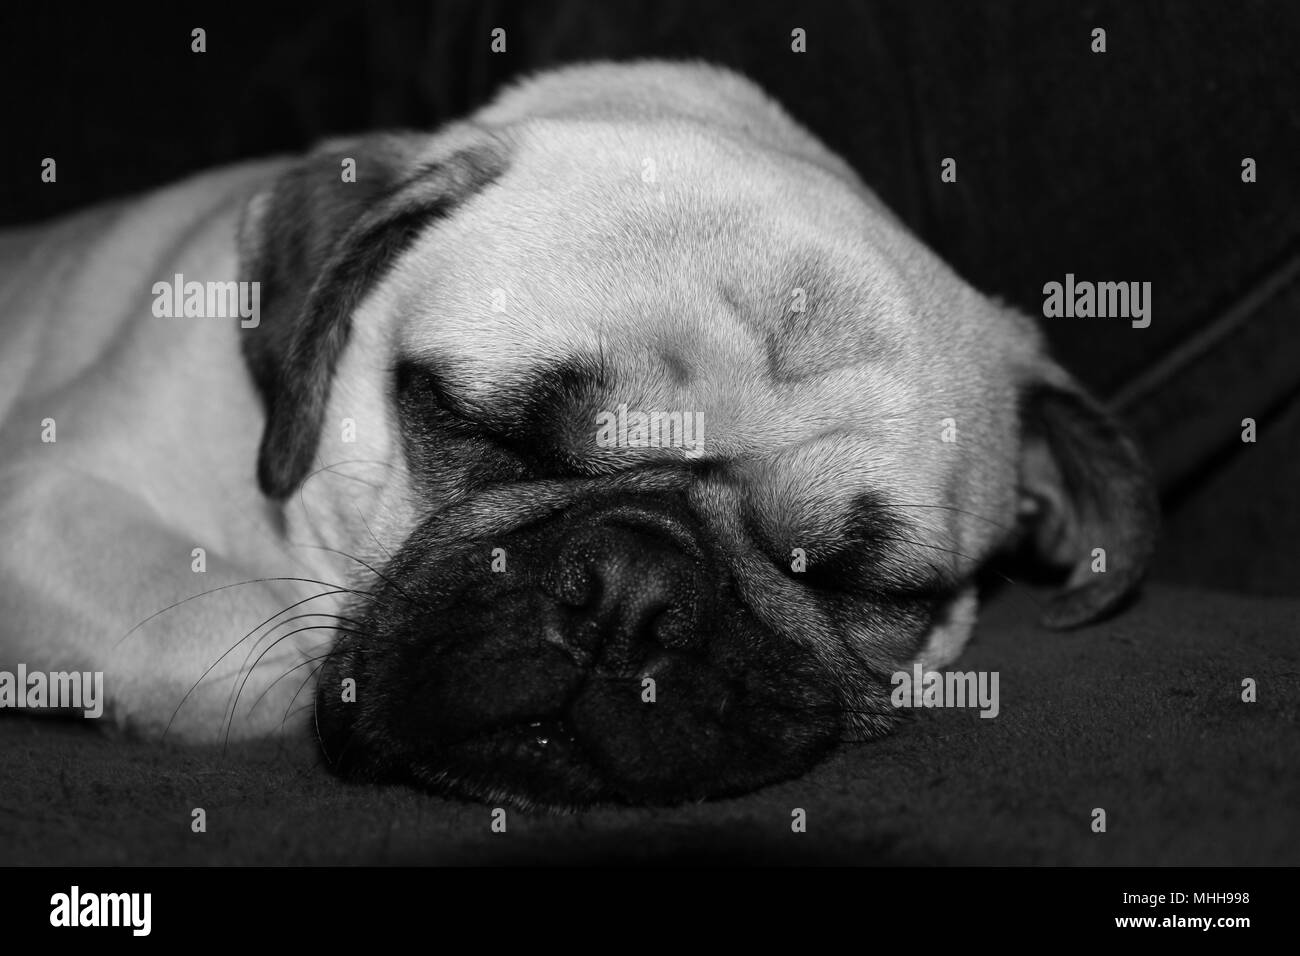 Black and white photo of a one year old male Pug dog asleep. - Stock Image